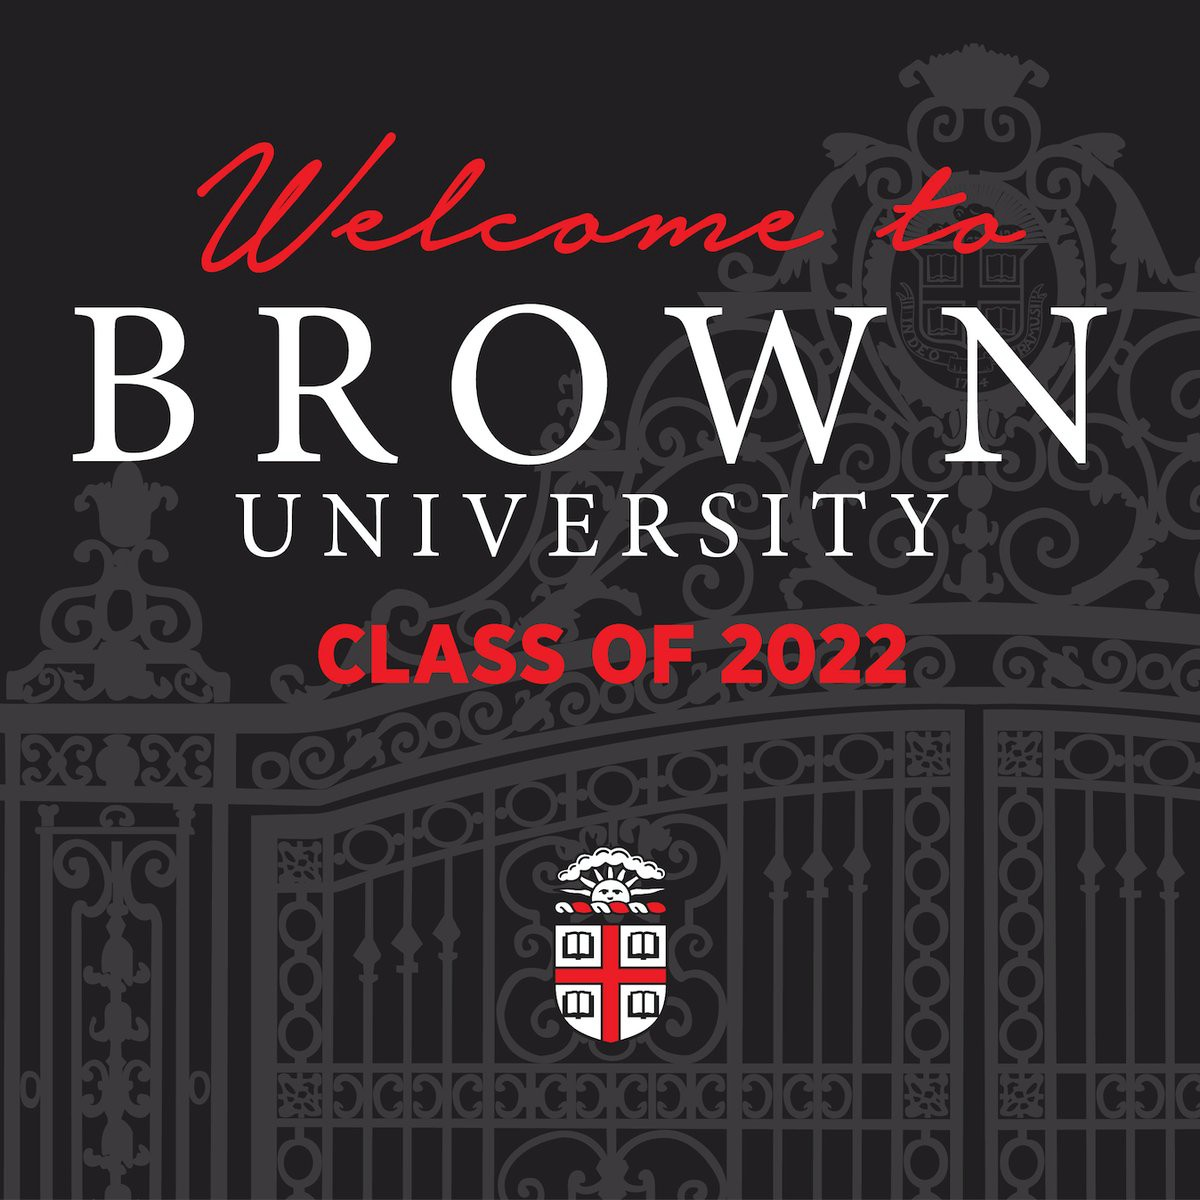 brown sets early decision admission low for the class of 2022